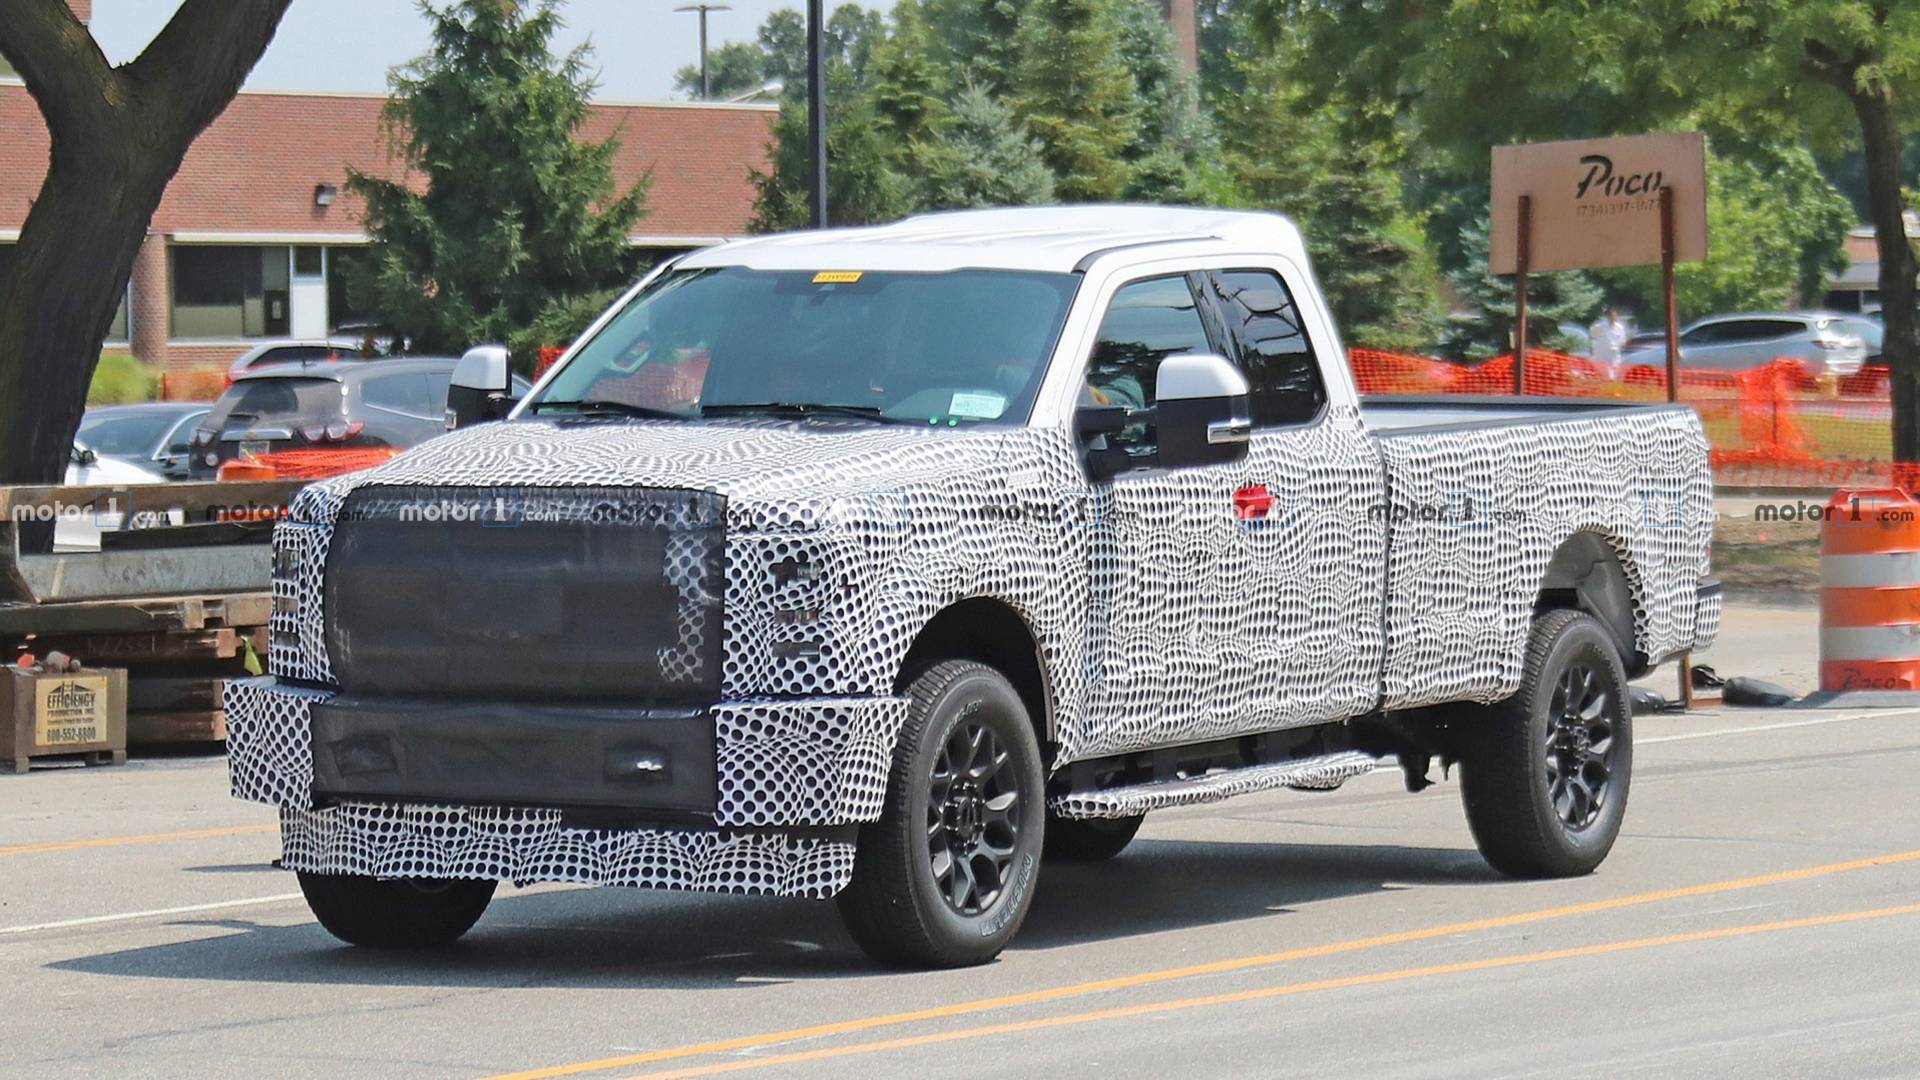 51 New Spy Shots Ford F350 Diesel Redesign and Review